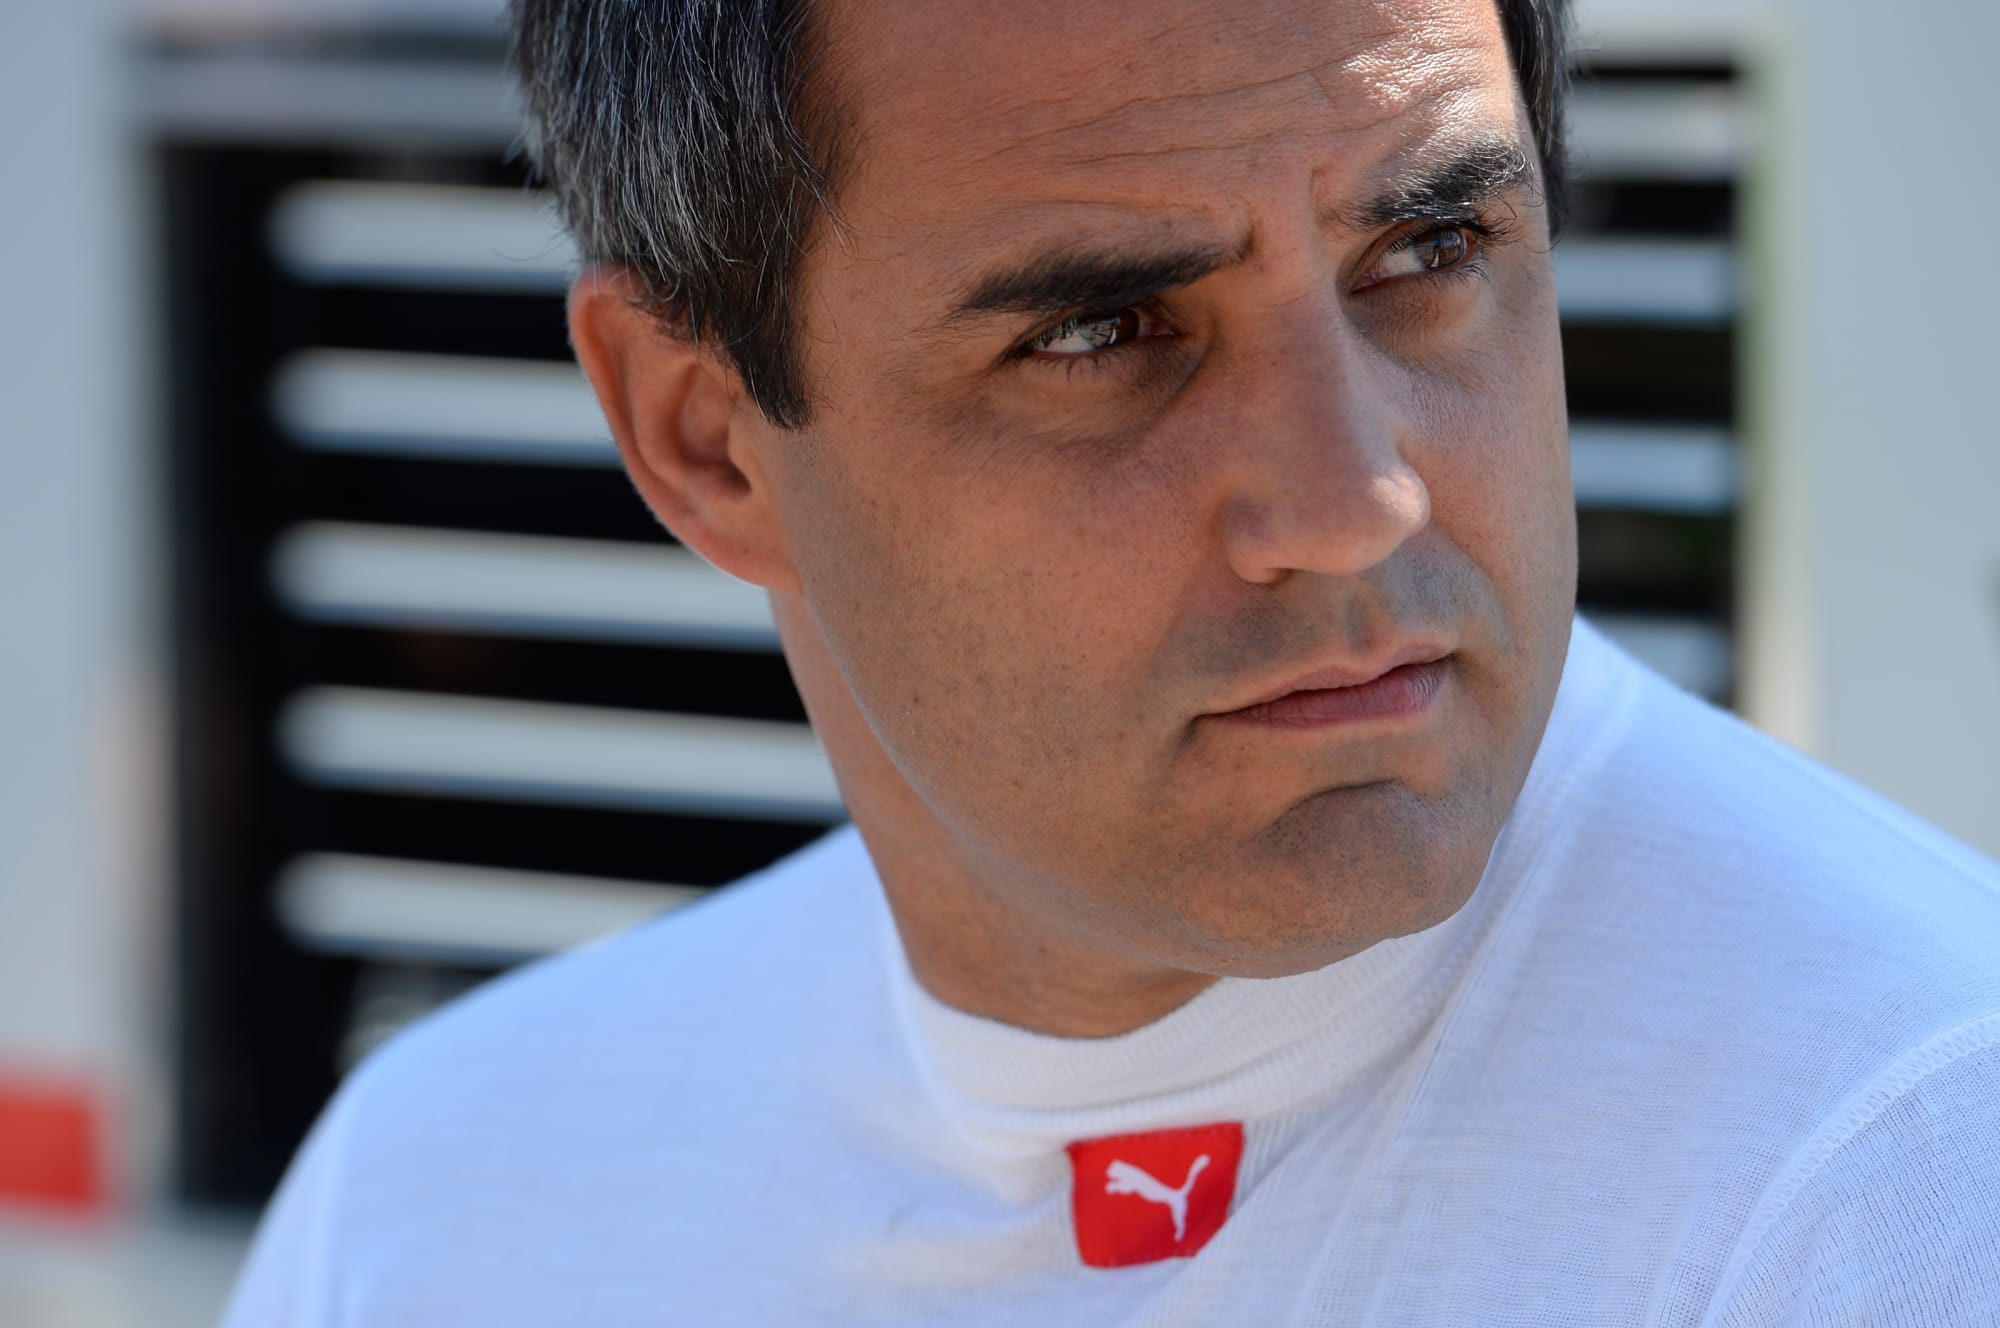 Indy 500: Juan Pablo Montoya's car number revealed?